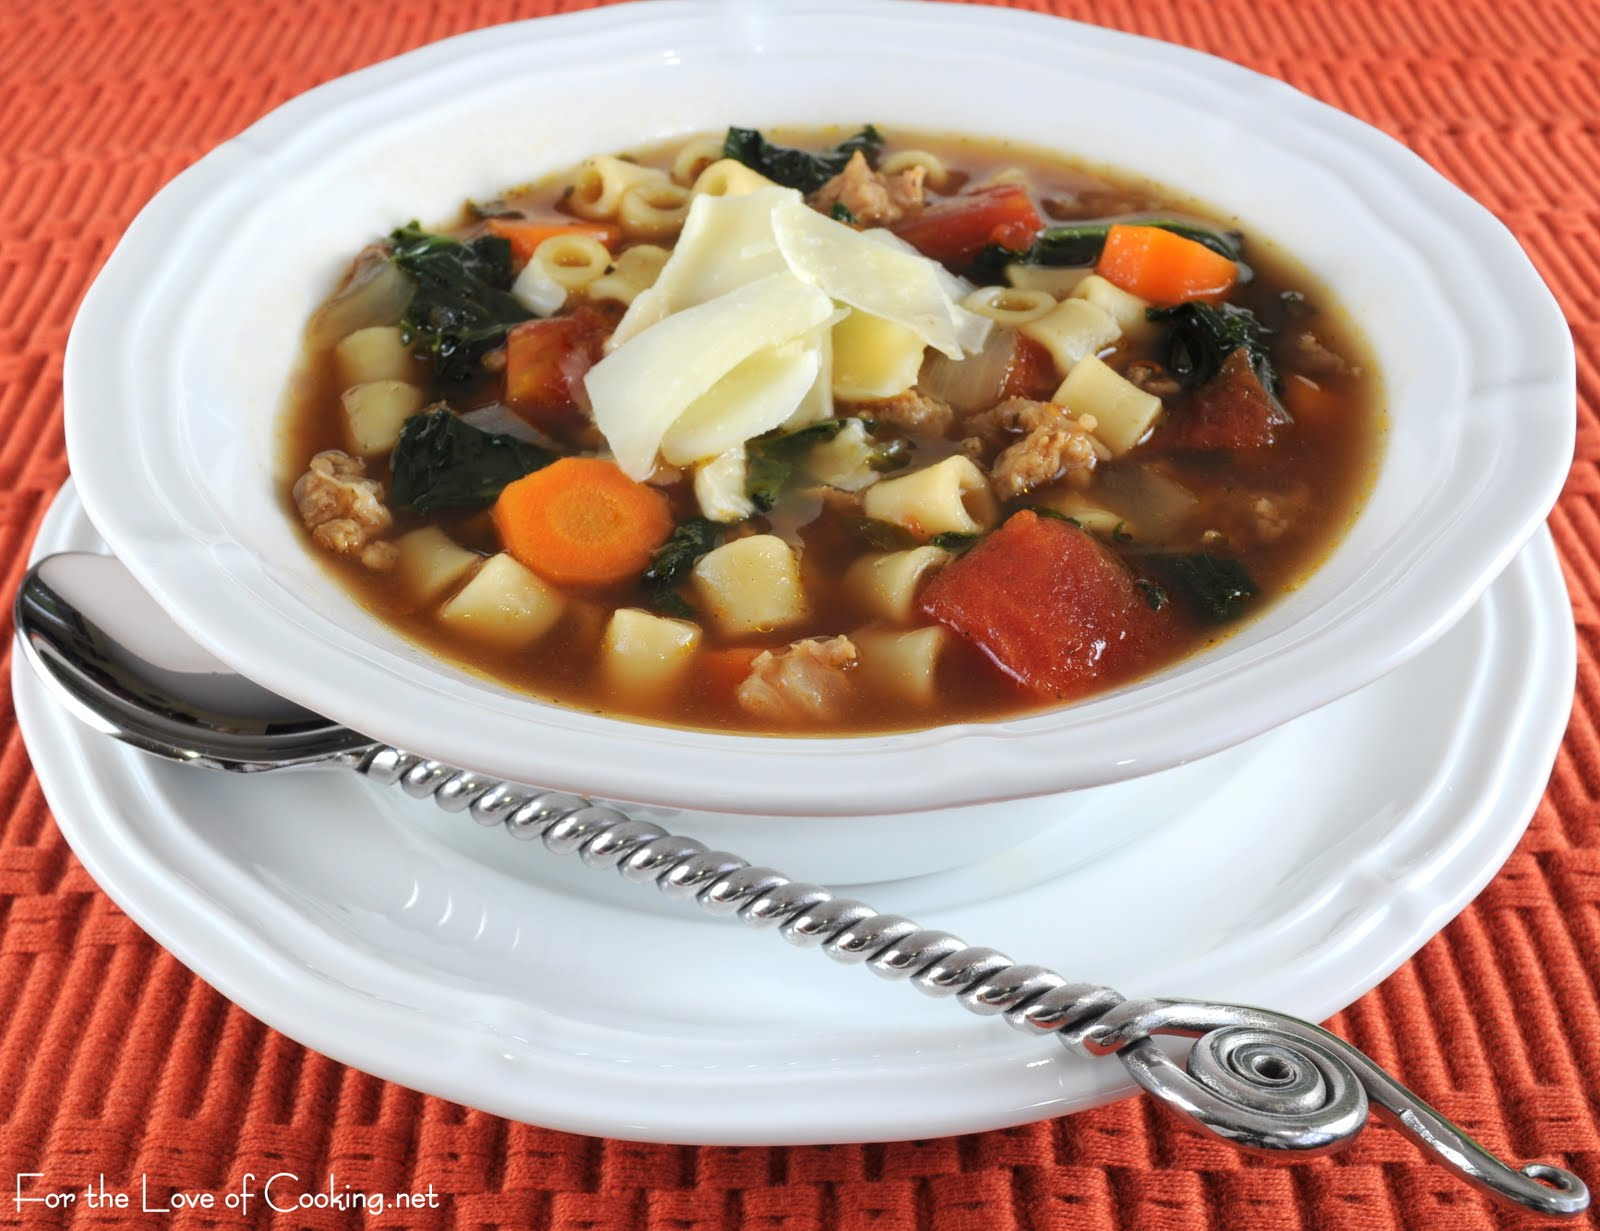 Turkey Italian Sausage, Kale, and Pasta Soup | For the Love of Cooking